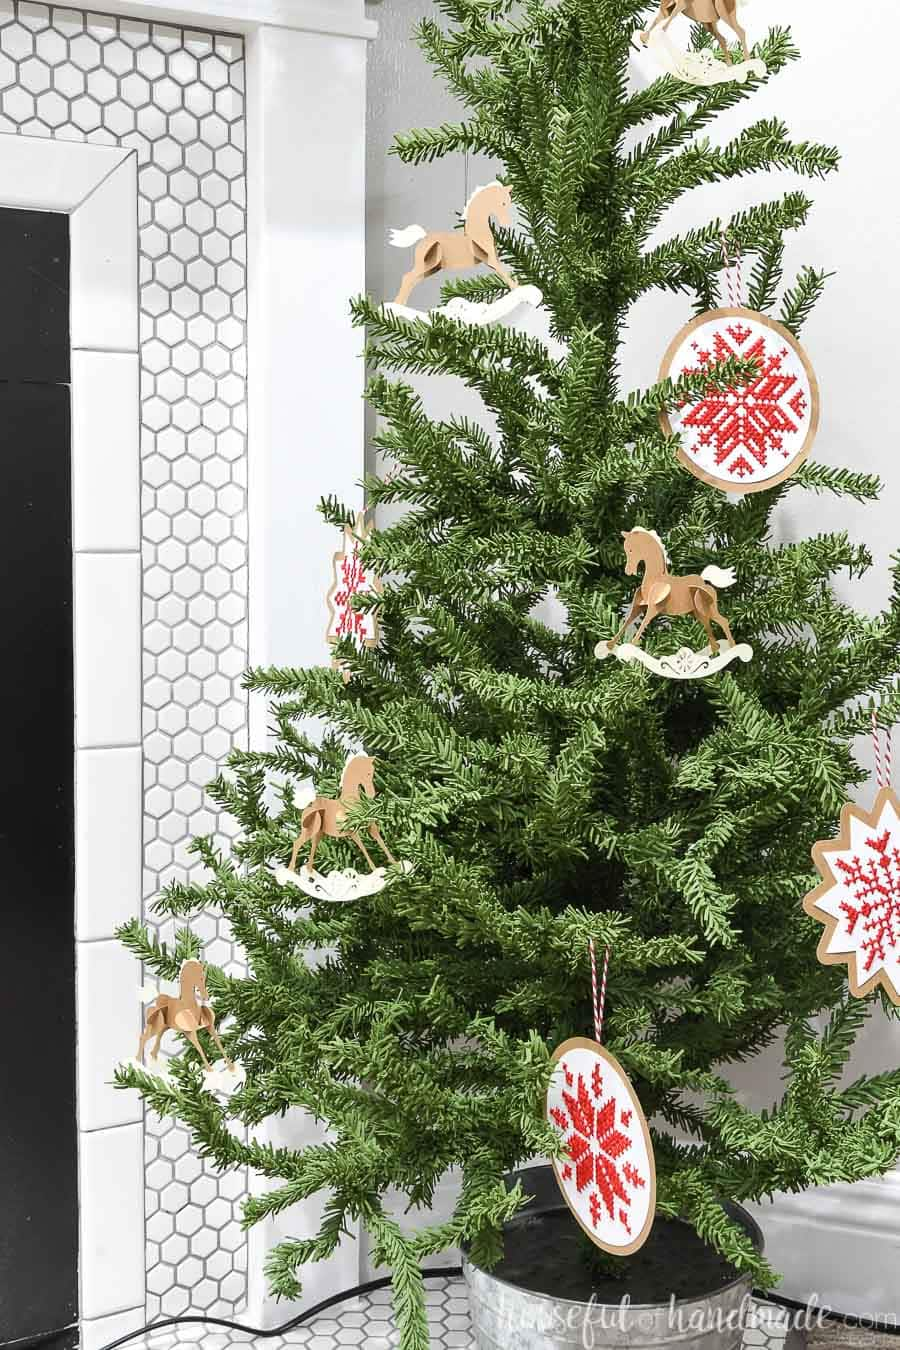 Mini Christmas tree decorated with paper rocking horse ornaments and cross-stitch Nordic snowflakes.